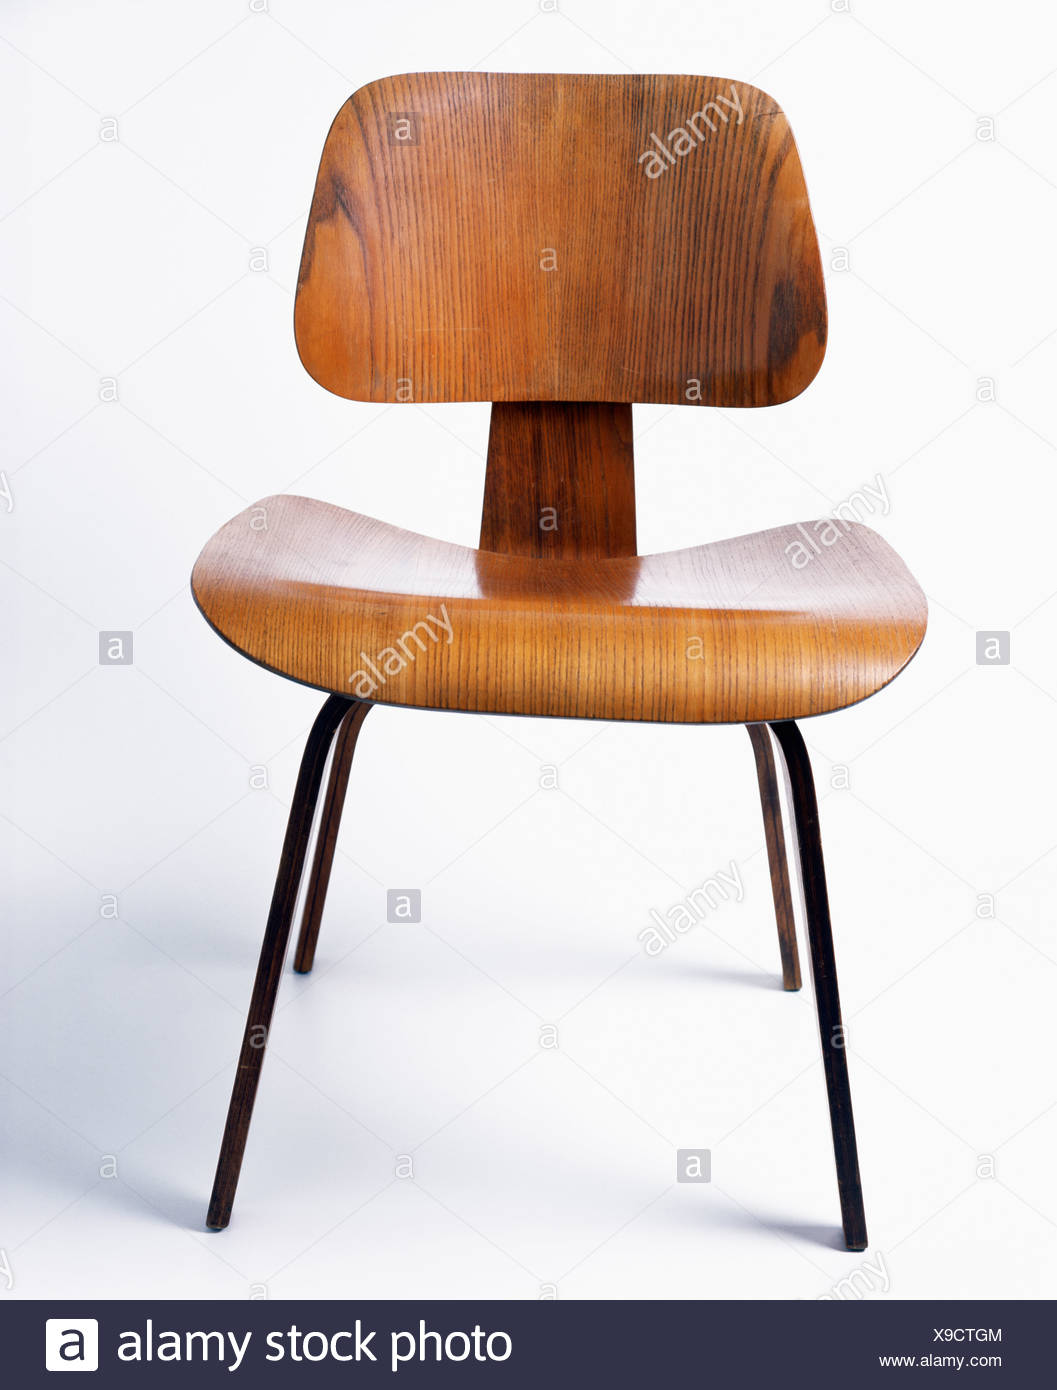 Charles Eames Close Up Of Charles Eames Lcw Chair Stock Photo 281180500 Alamy